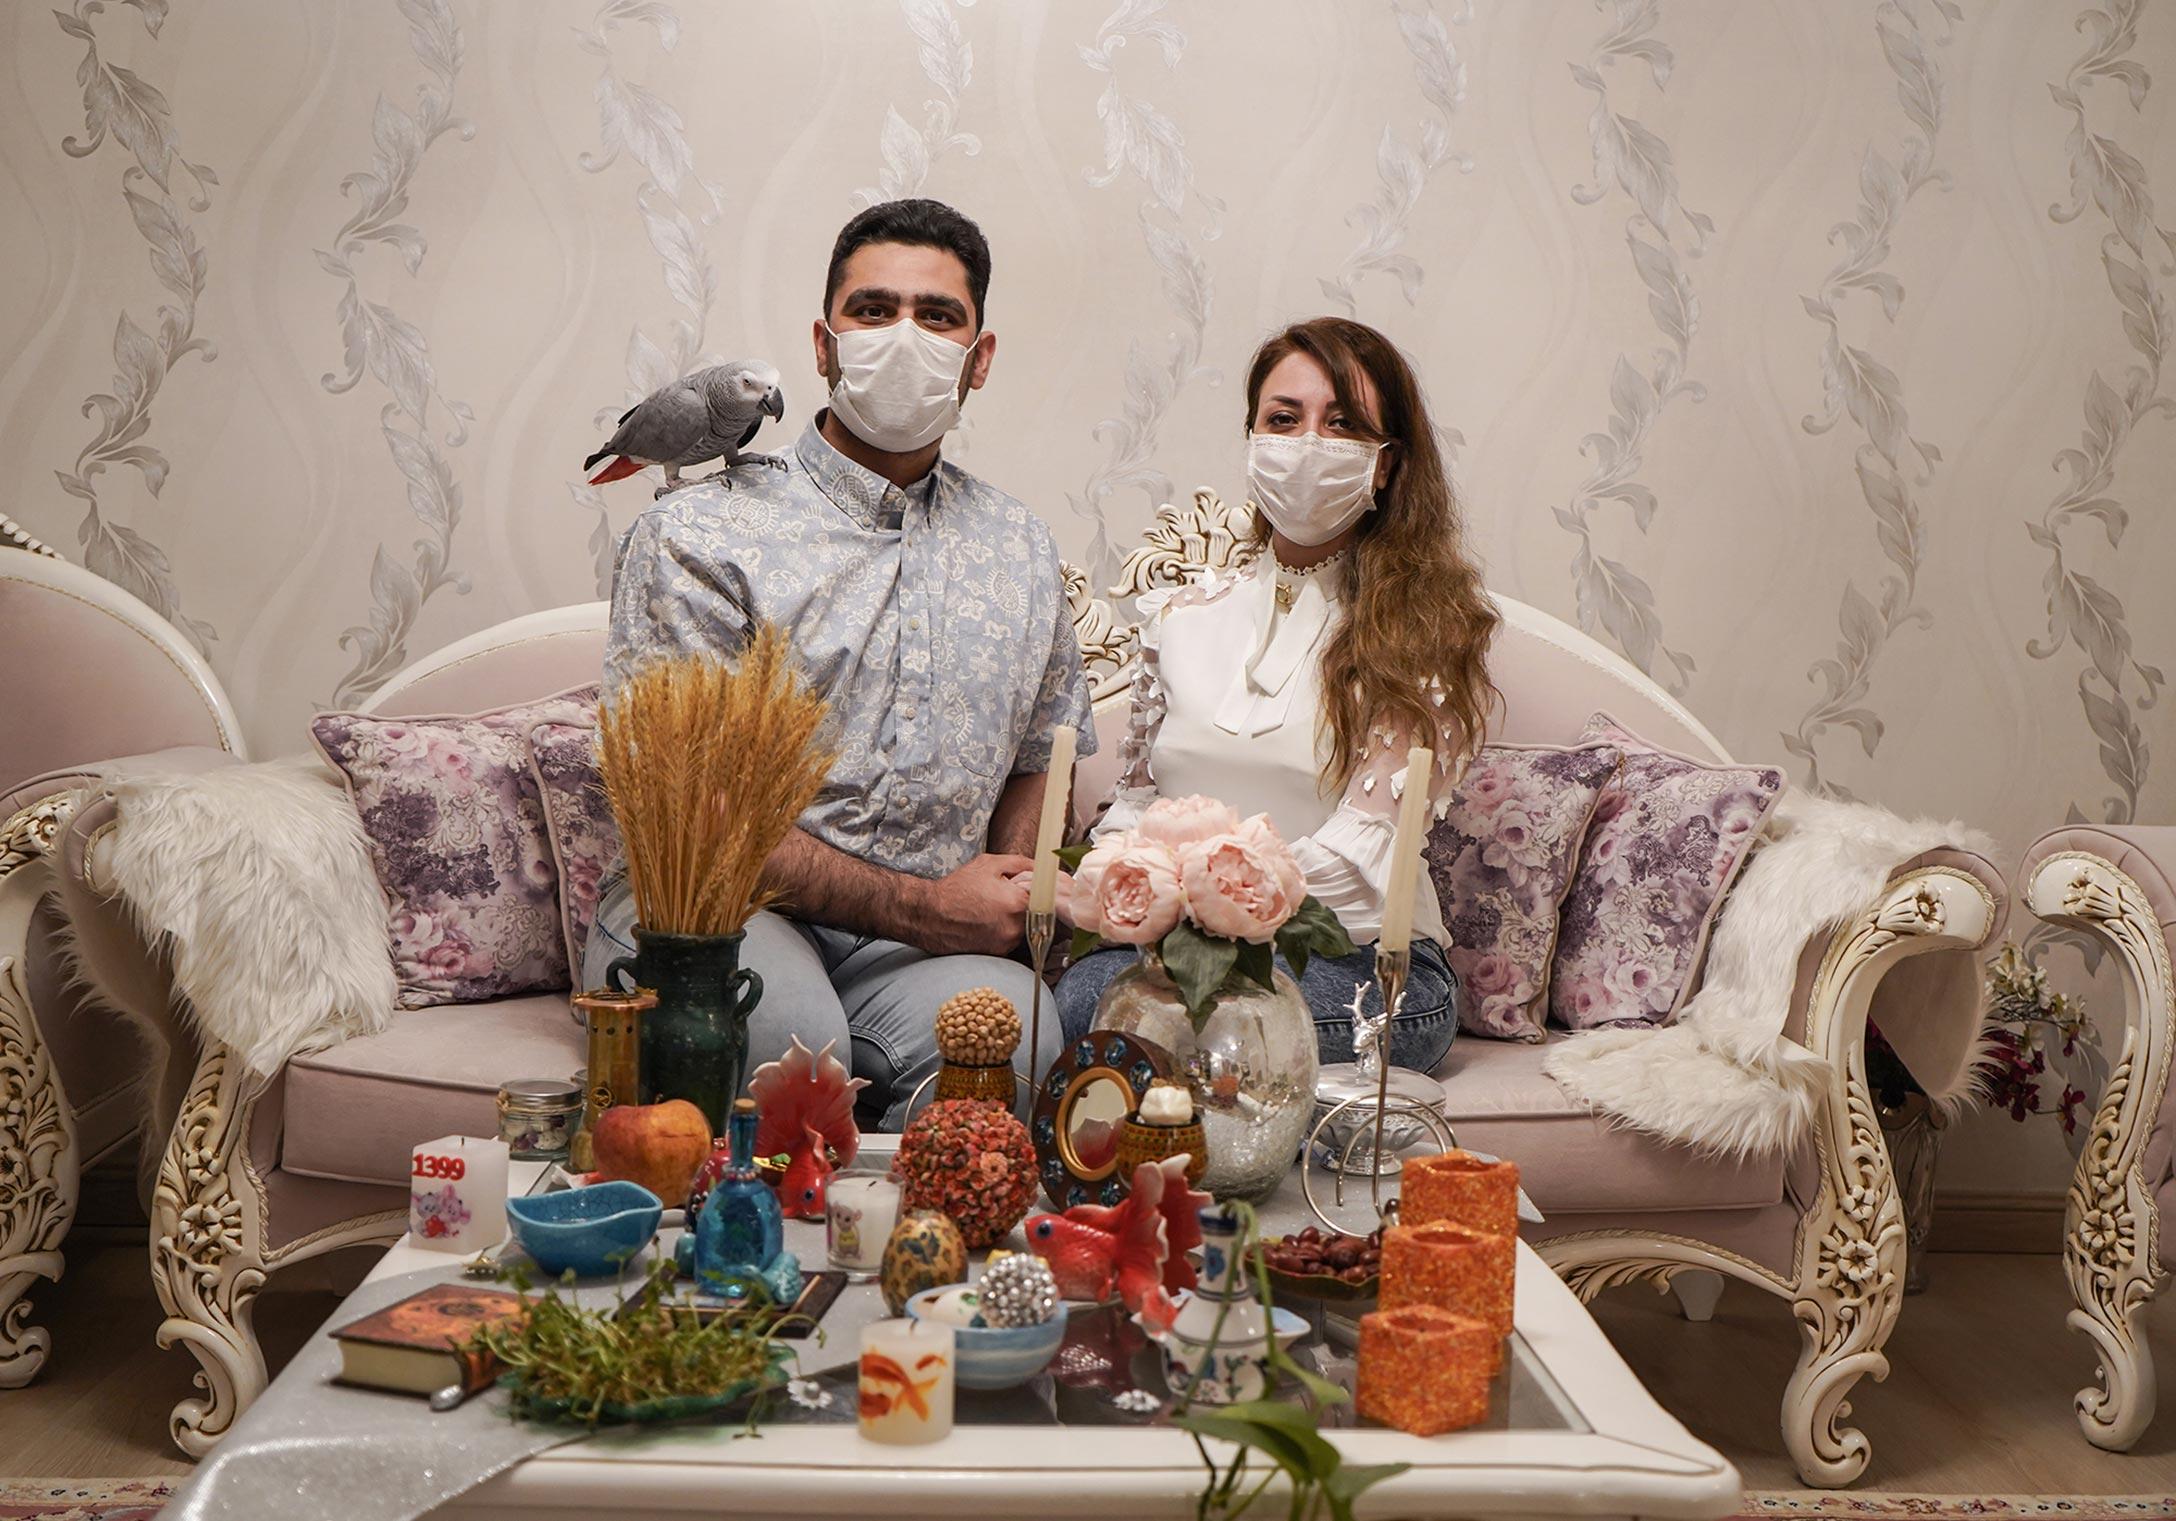 A couple wearing face masks are shown on a sofa surrounded by food and pets.